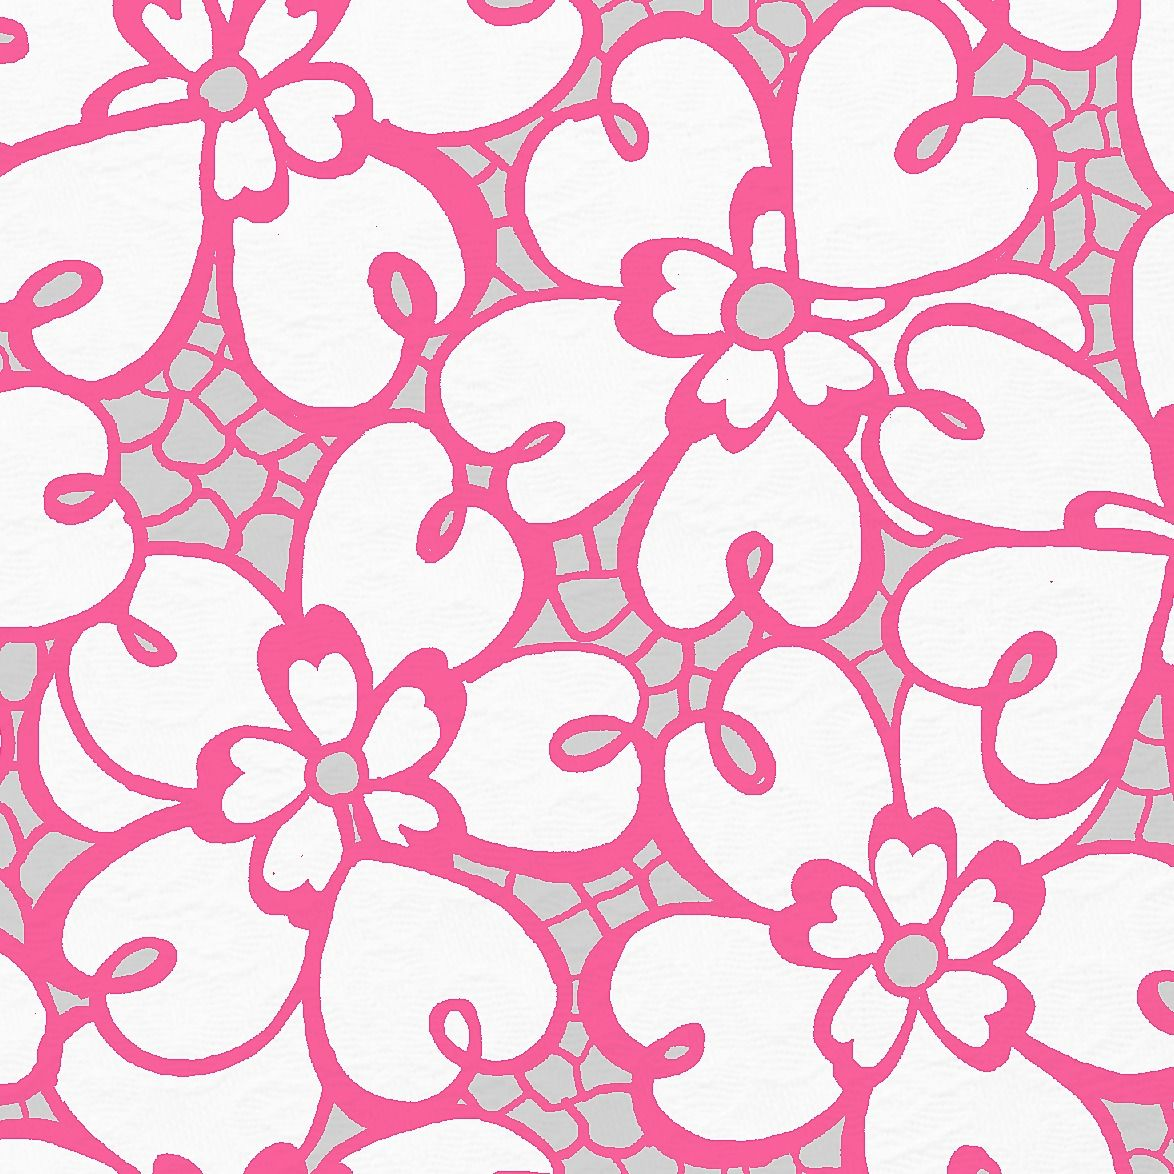 Lilly Pulitzer Fiesta Pink Pique Lace | LILLY PULITZER | Pinterest ...